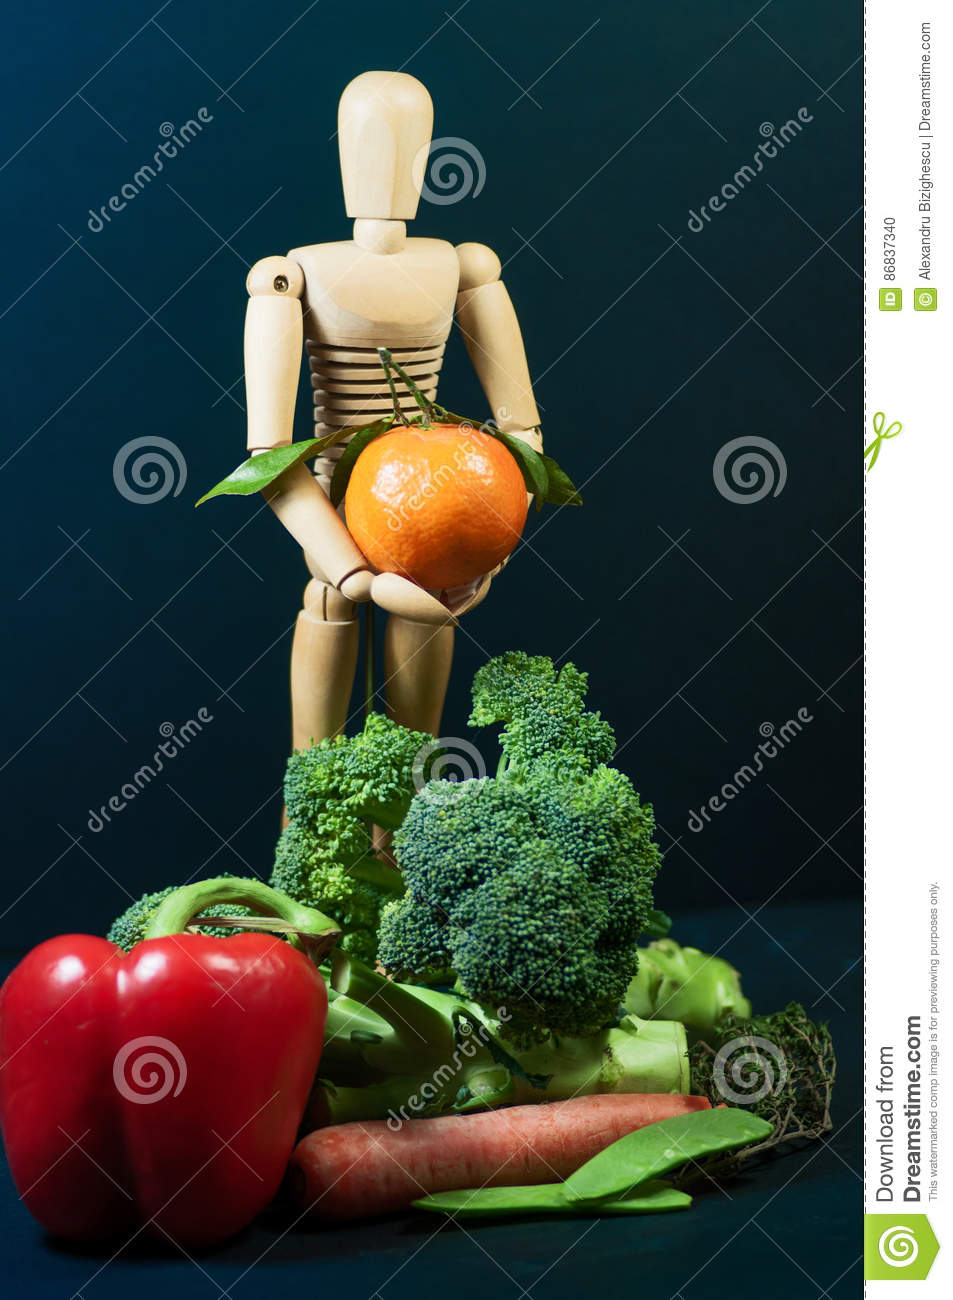 Wooden mannequin and a mix of vegetables and fruits